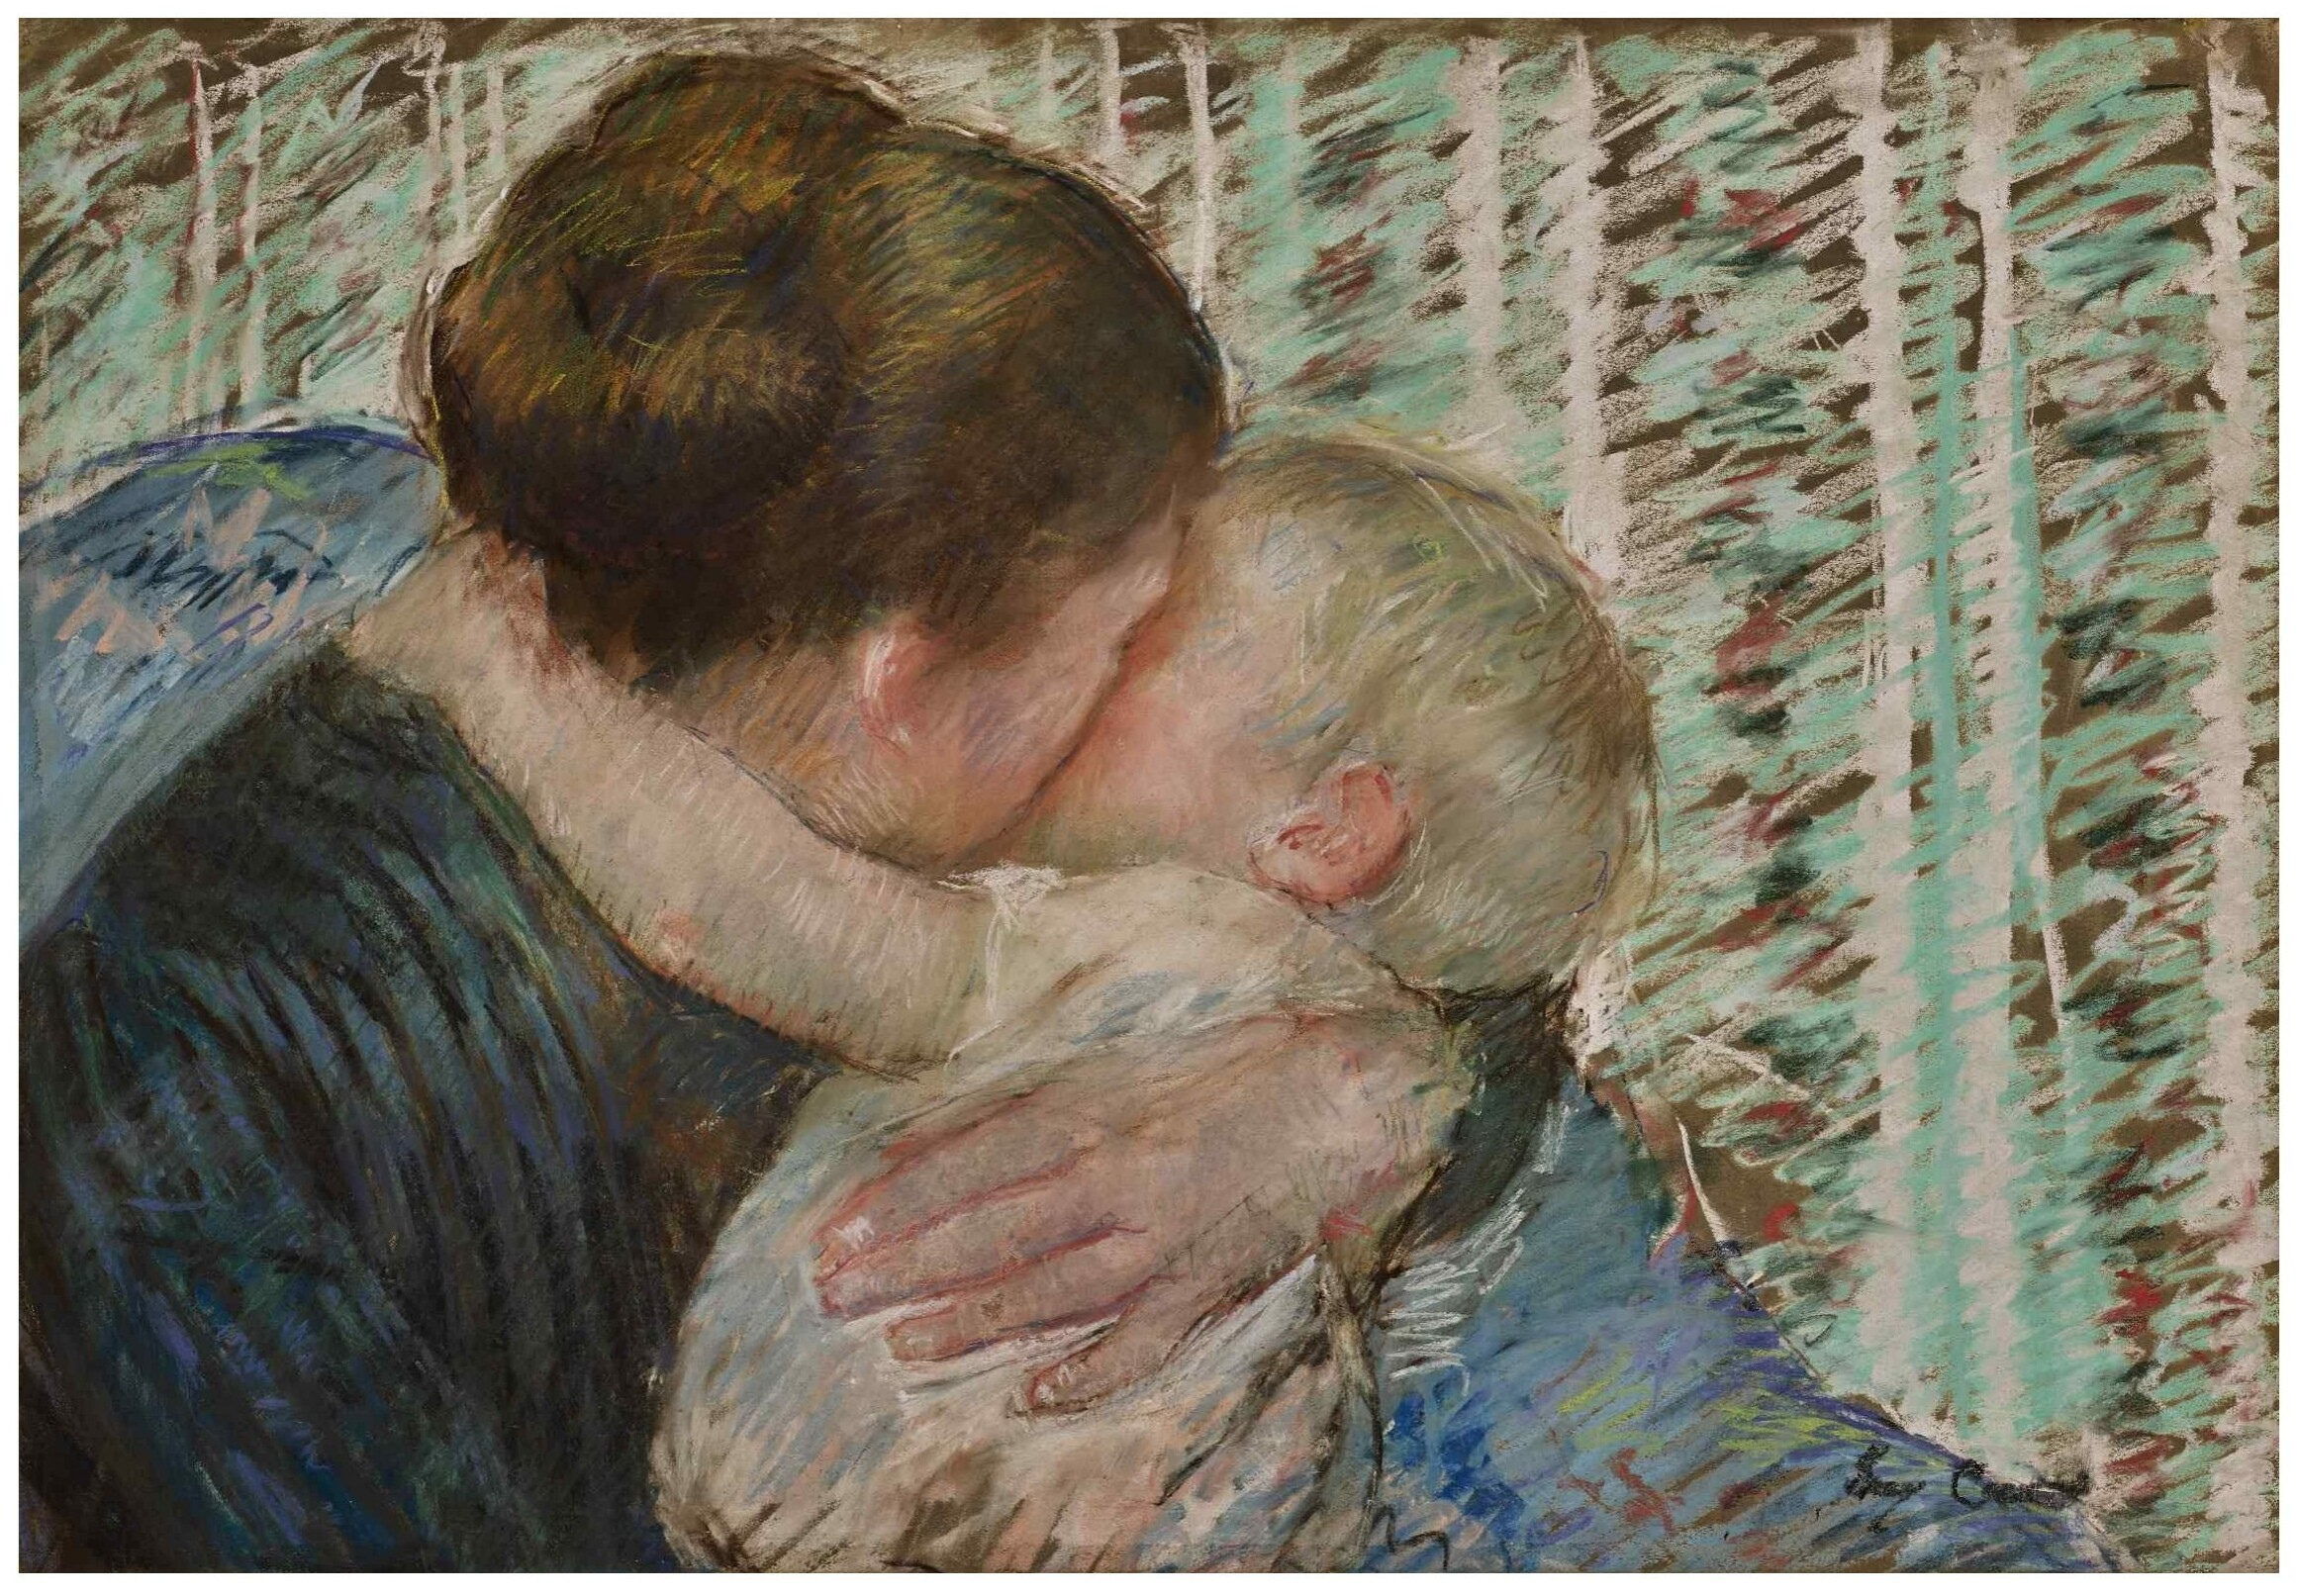 Mary Cassatt (1844-1926) A goodnight hug (1880)